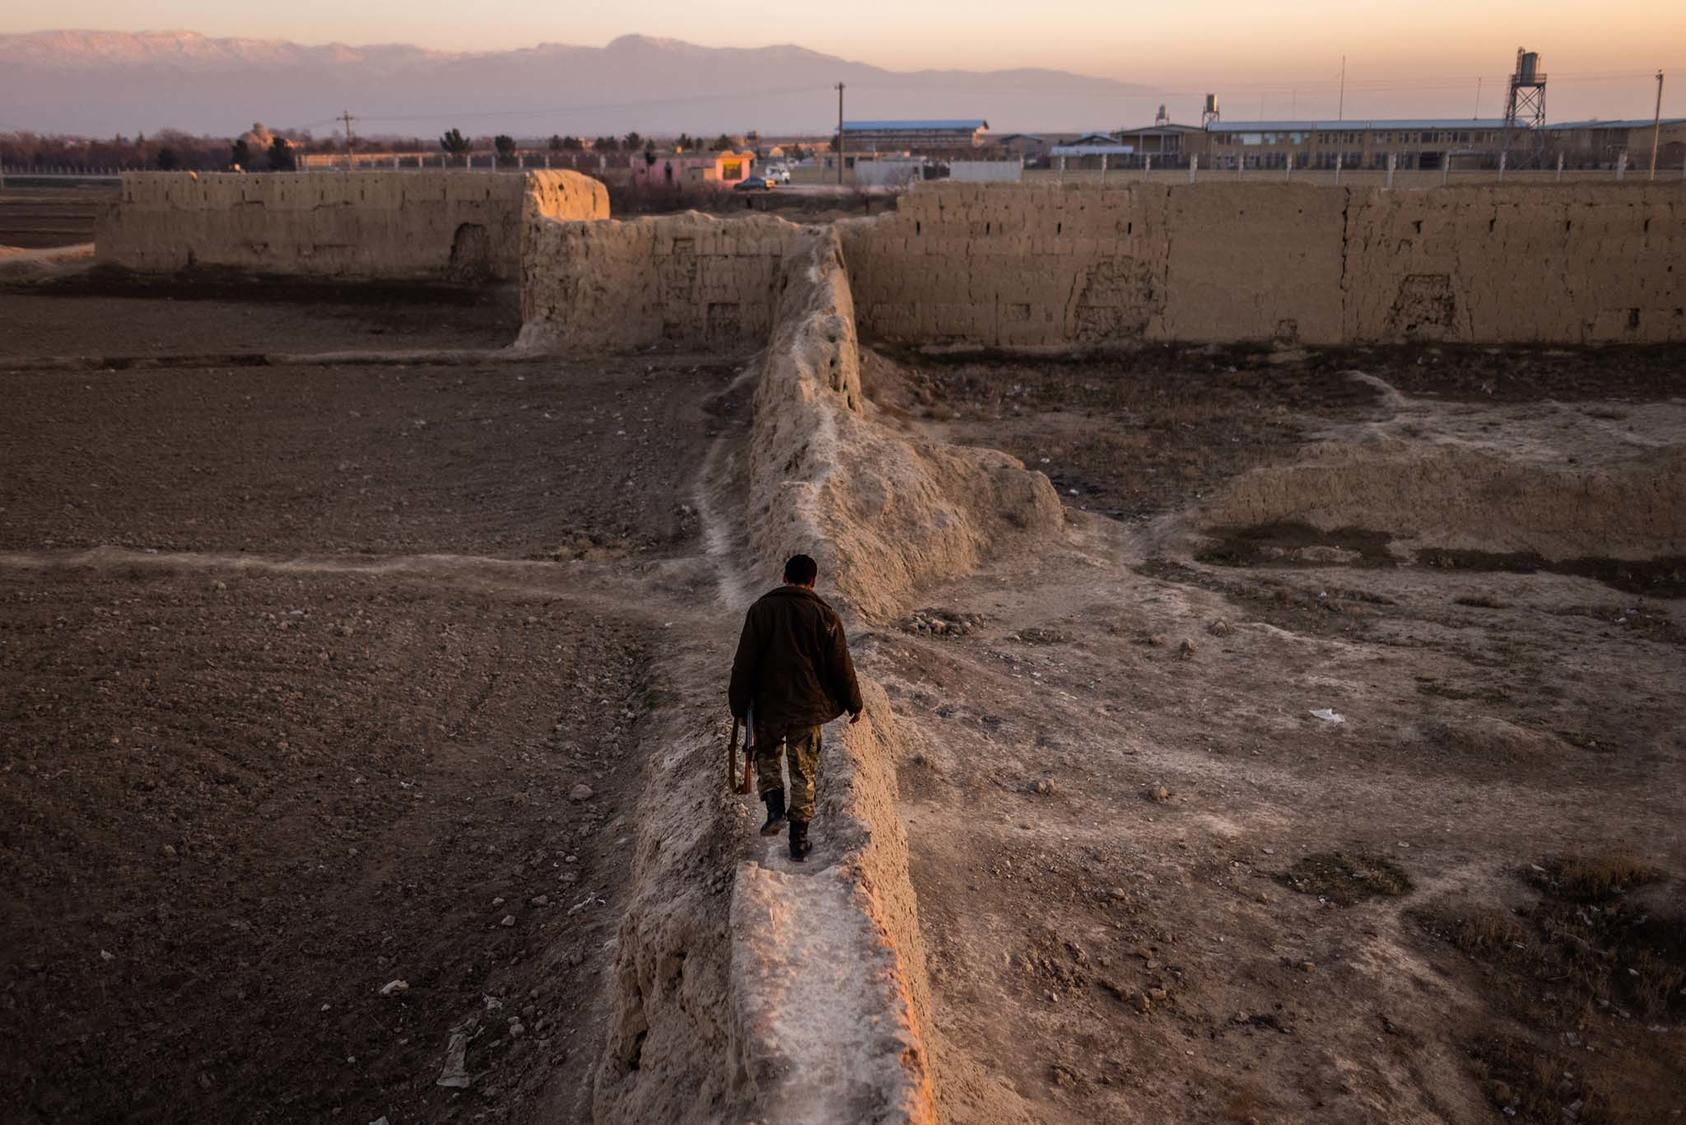 An Afghan policeman in Mazar-i-Sharif, a northern city in Afghanistan, on Jan. 17, 2021. The Taliban's rapid seizure of rural parts of northern Afghanistan has countries in the region preparing for the militiant group to control Afghanistan. (Jim Huylebroek/The New York Times)